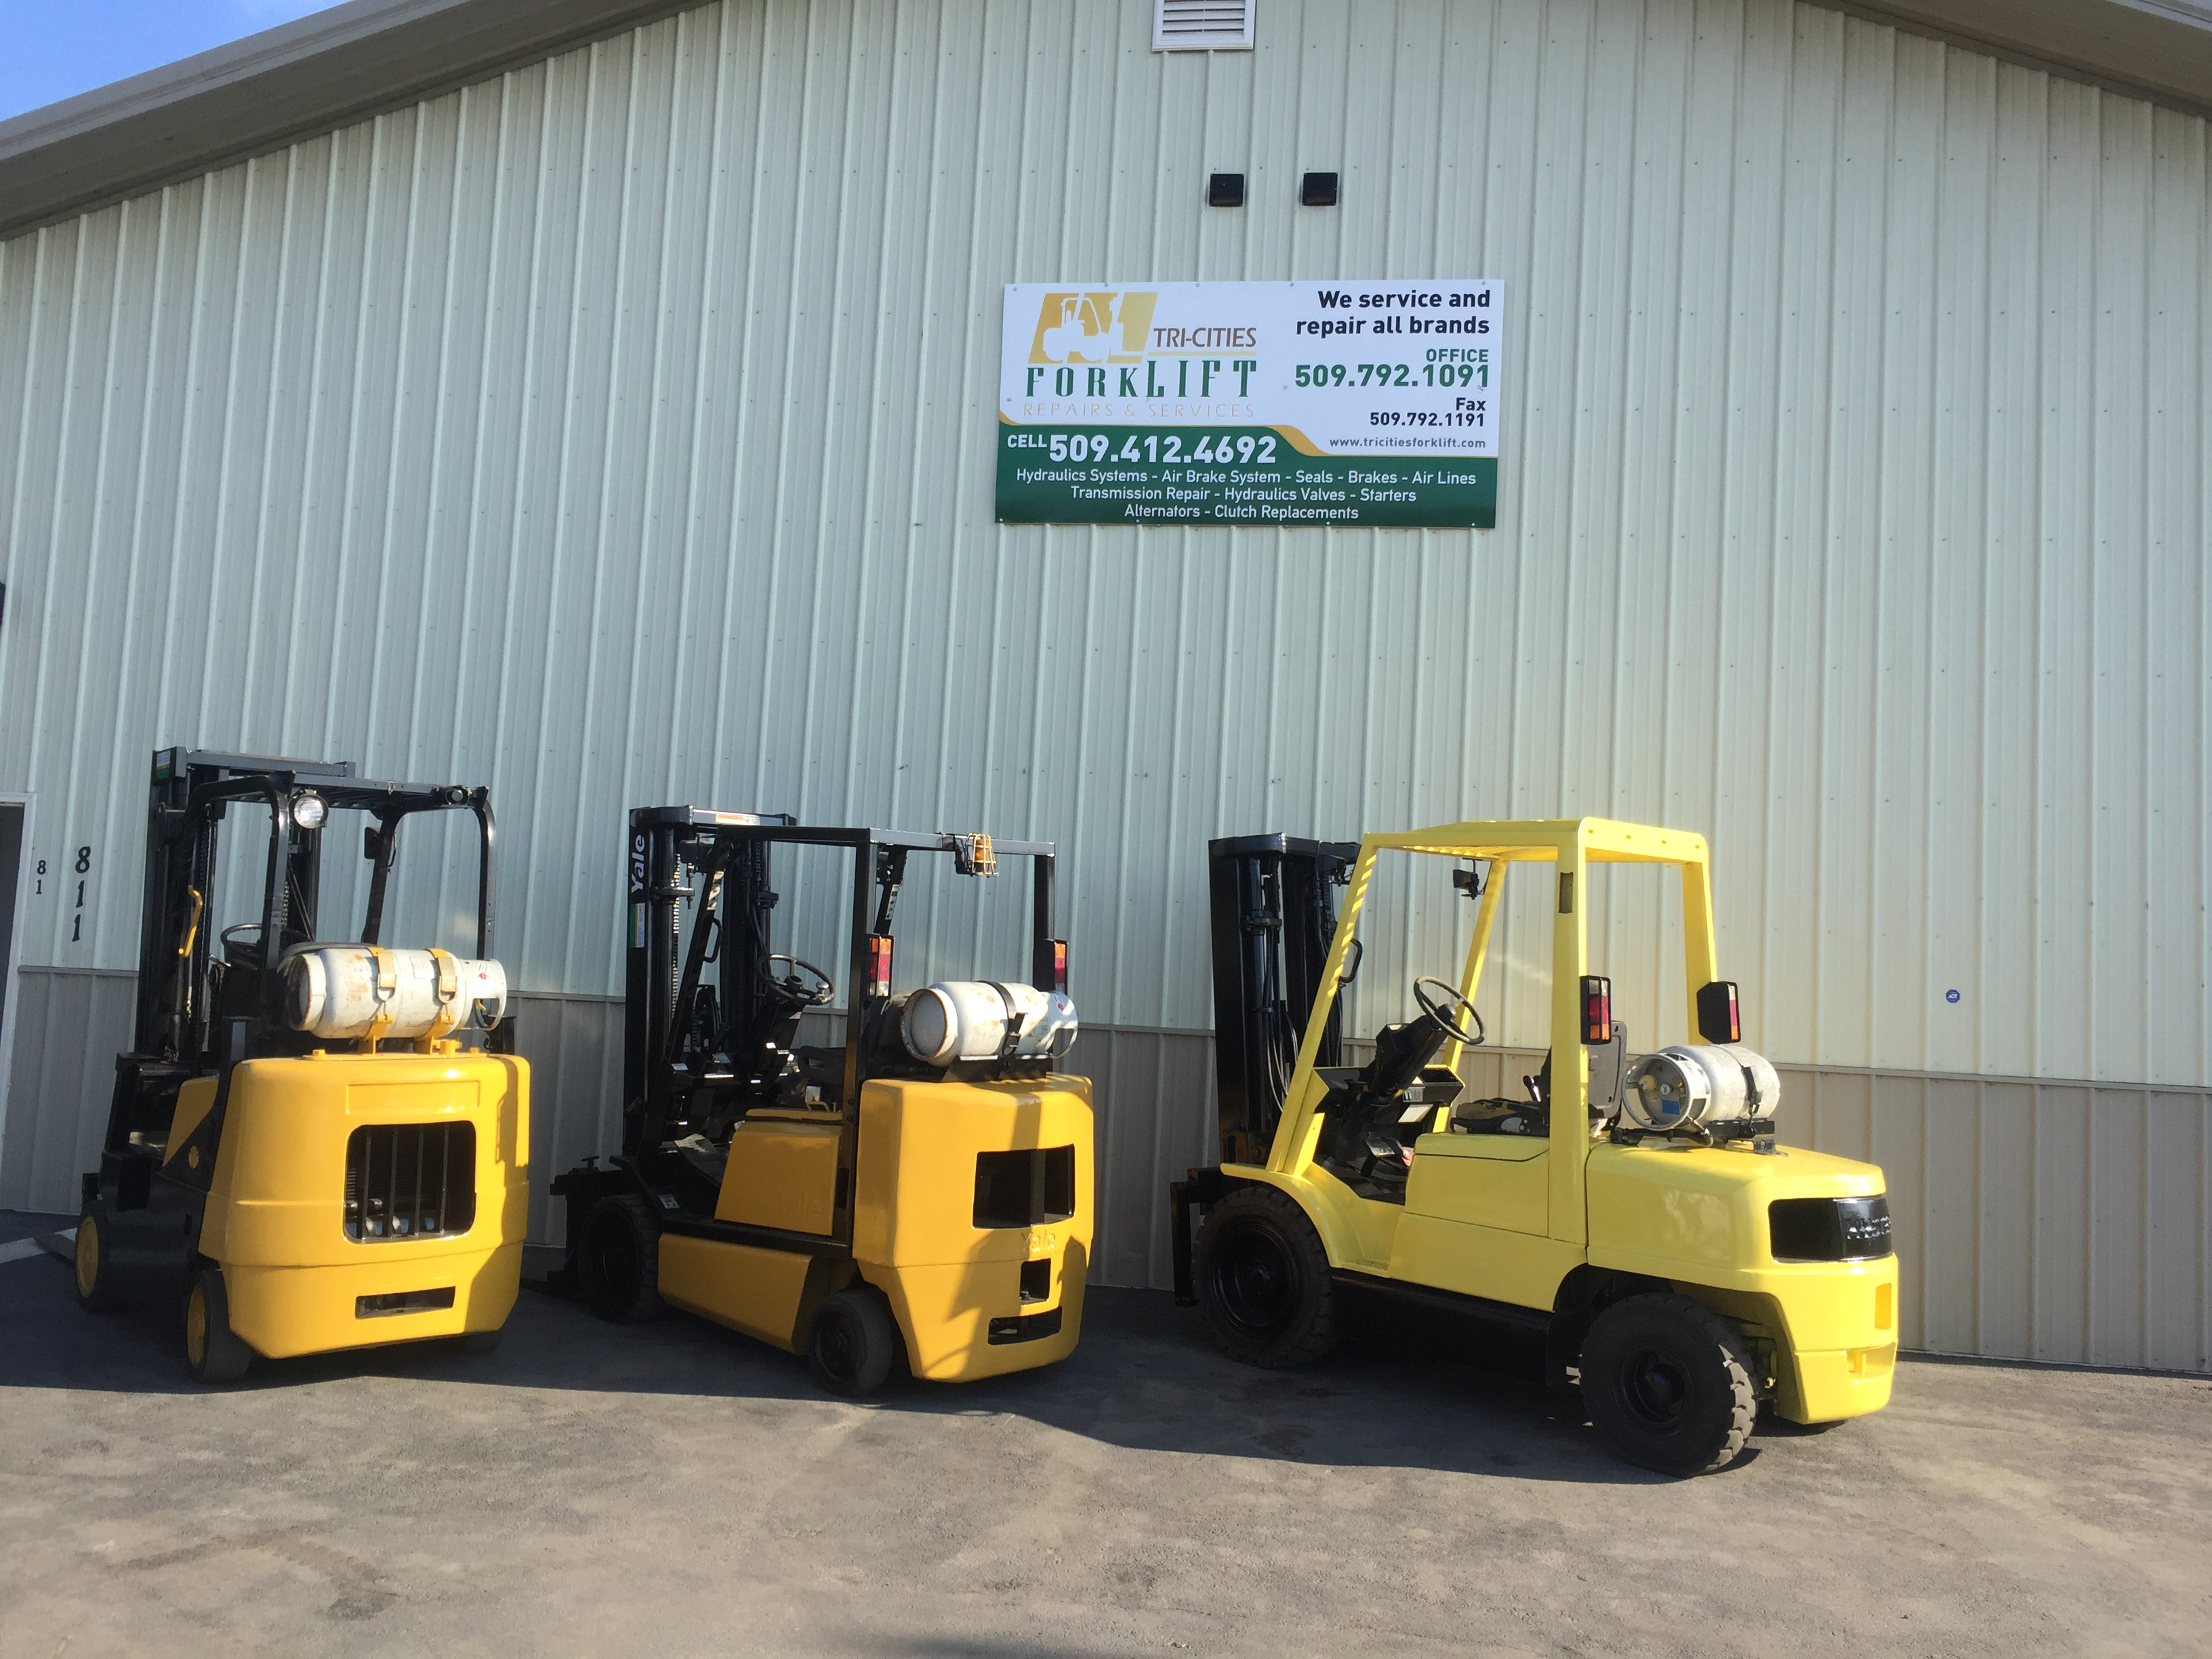 Tri Cities Fork Lift Repair And Service 811 S Myrtle Ave Pasco WA